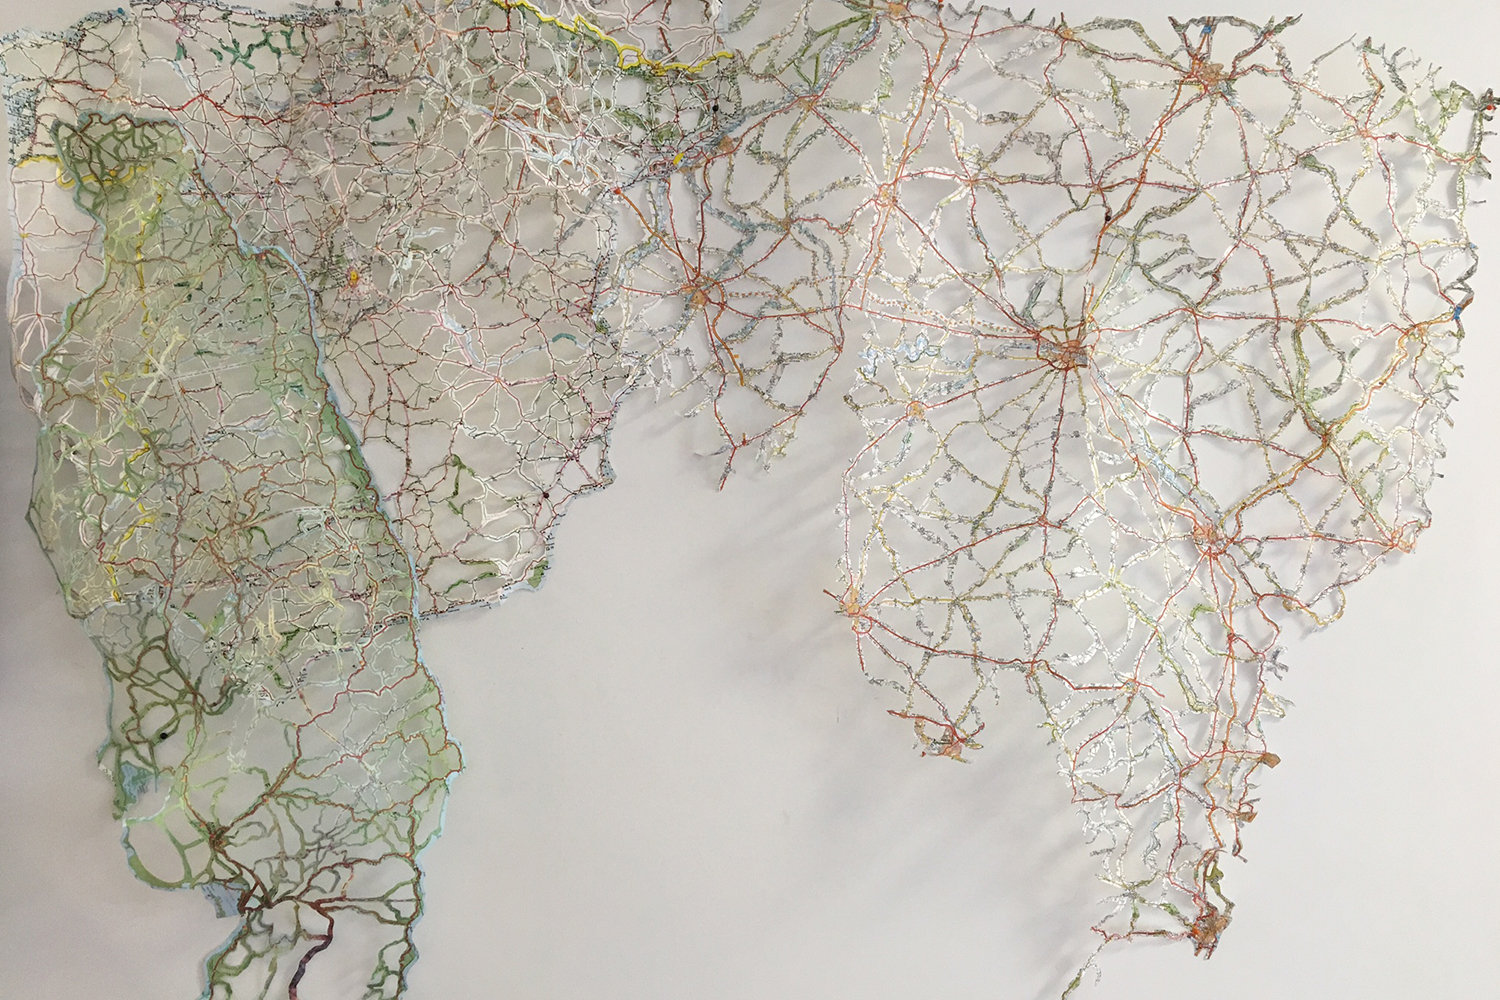 Rebecca DiDomenico, _Emanate:Jamaica, France, Spain_, 2016. Paper map, 48 x 36 x 4 inches.